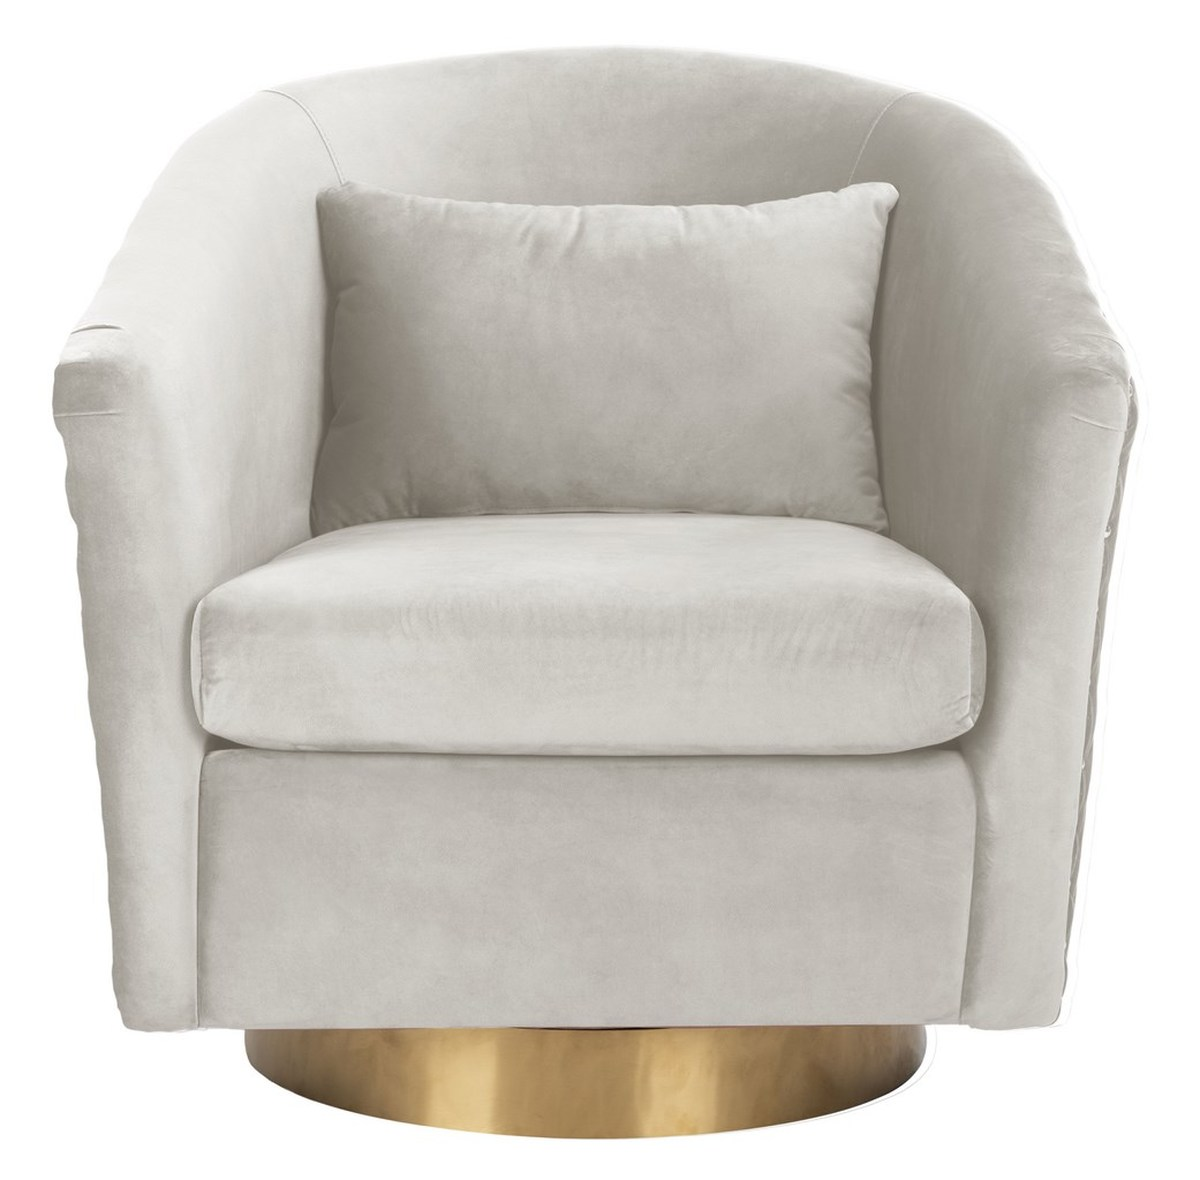 store lee tub furniture vici chair c villa contemporary p swiveltubchair and swivel